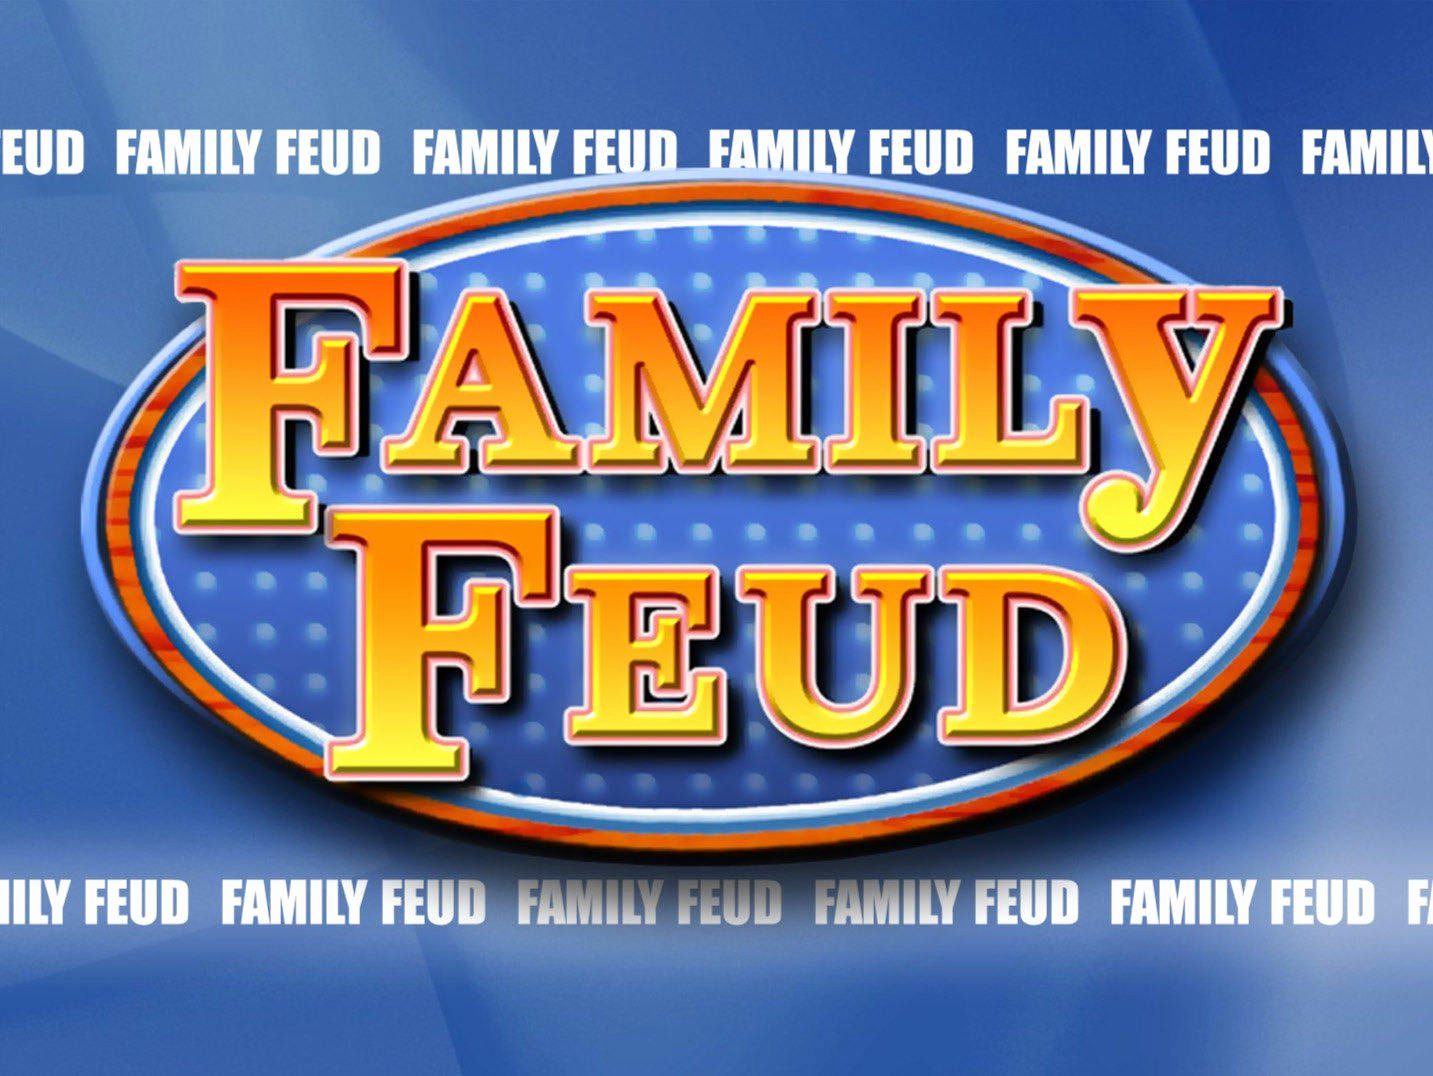 Family Feud Powerpoint Template Awesome Customizable Family Feud Powerpoint Template